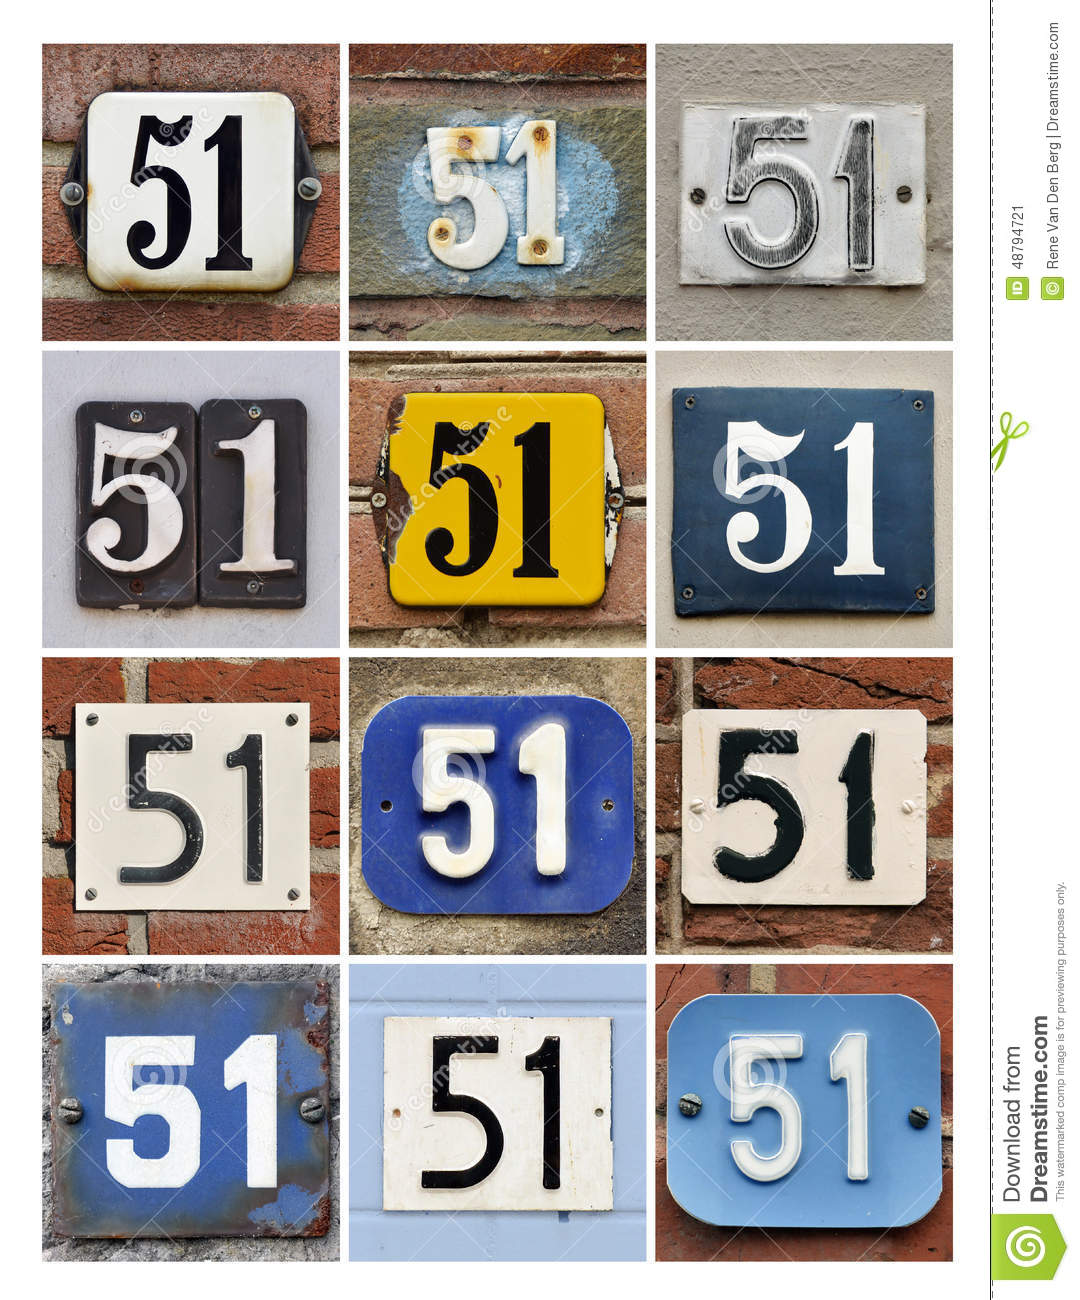 Number 51 Stock Image  Image Of Composite  Icon  51st